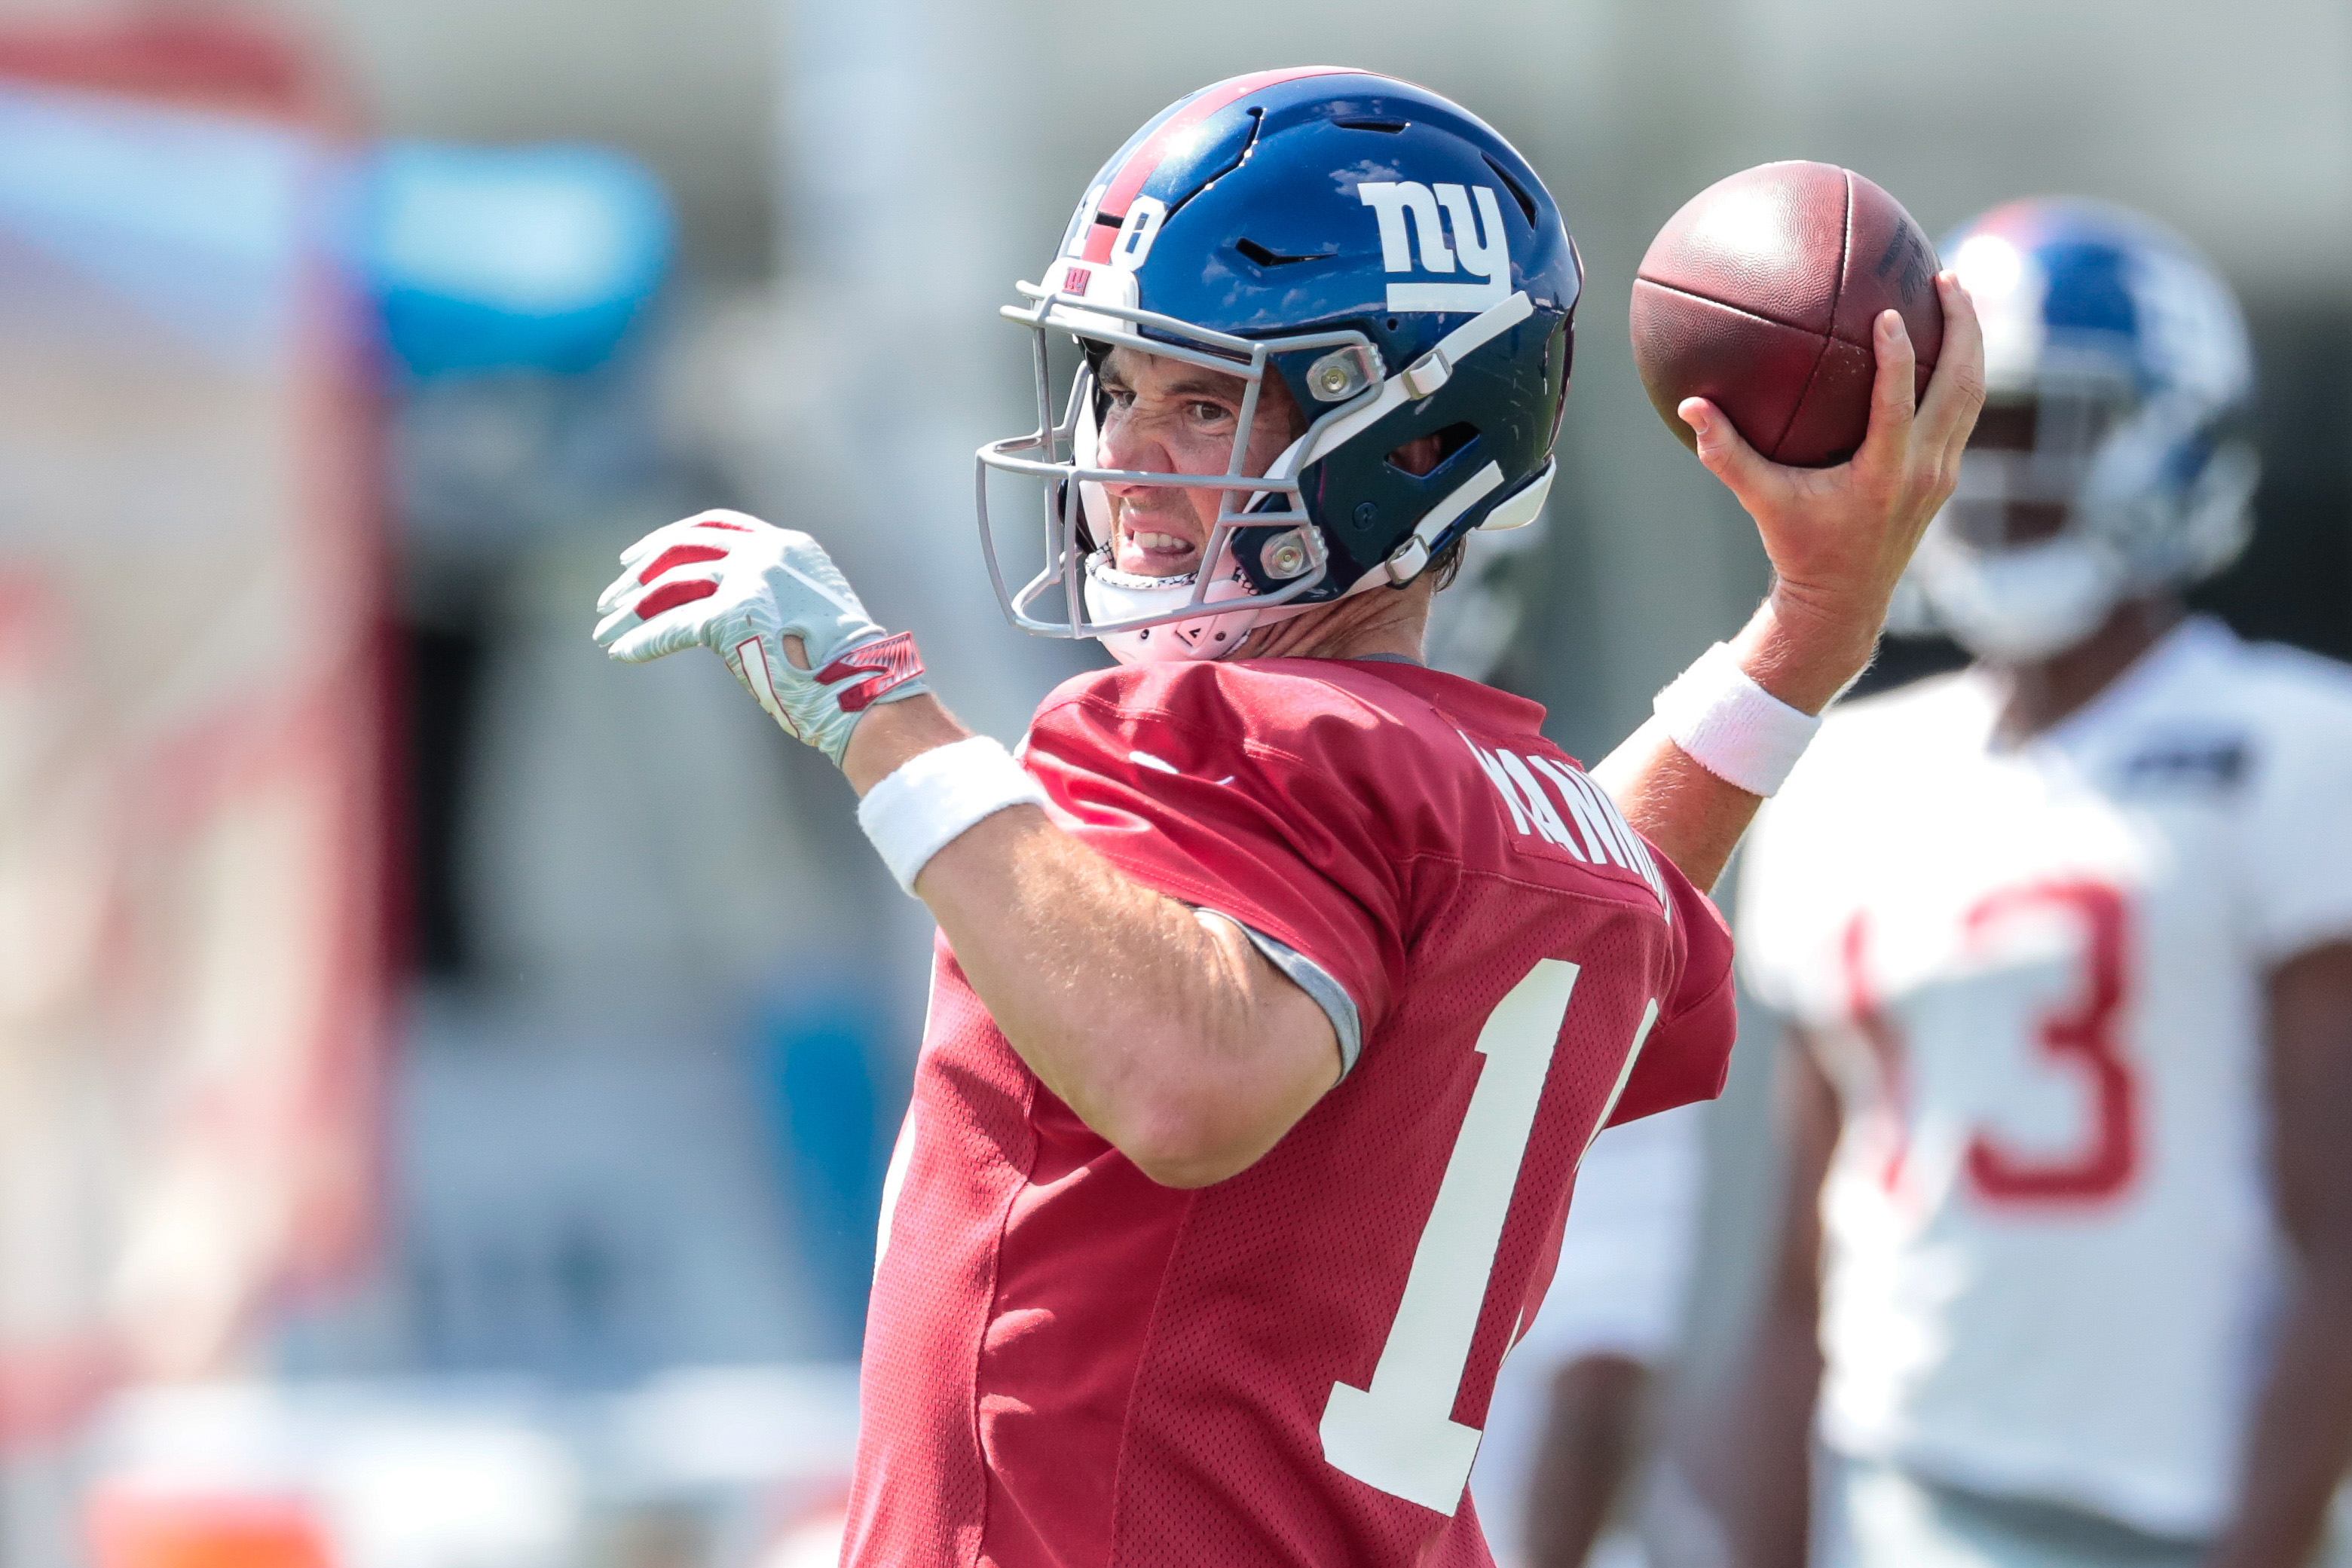 Eli Manning reveals he worked with private pitching coach for arm strength in offseason